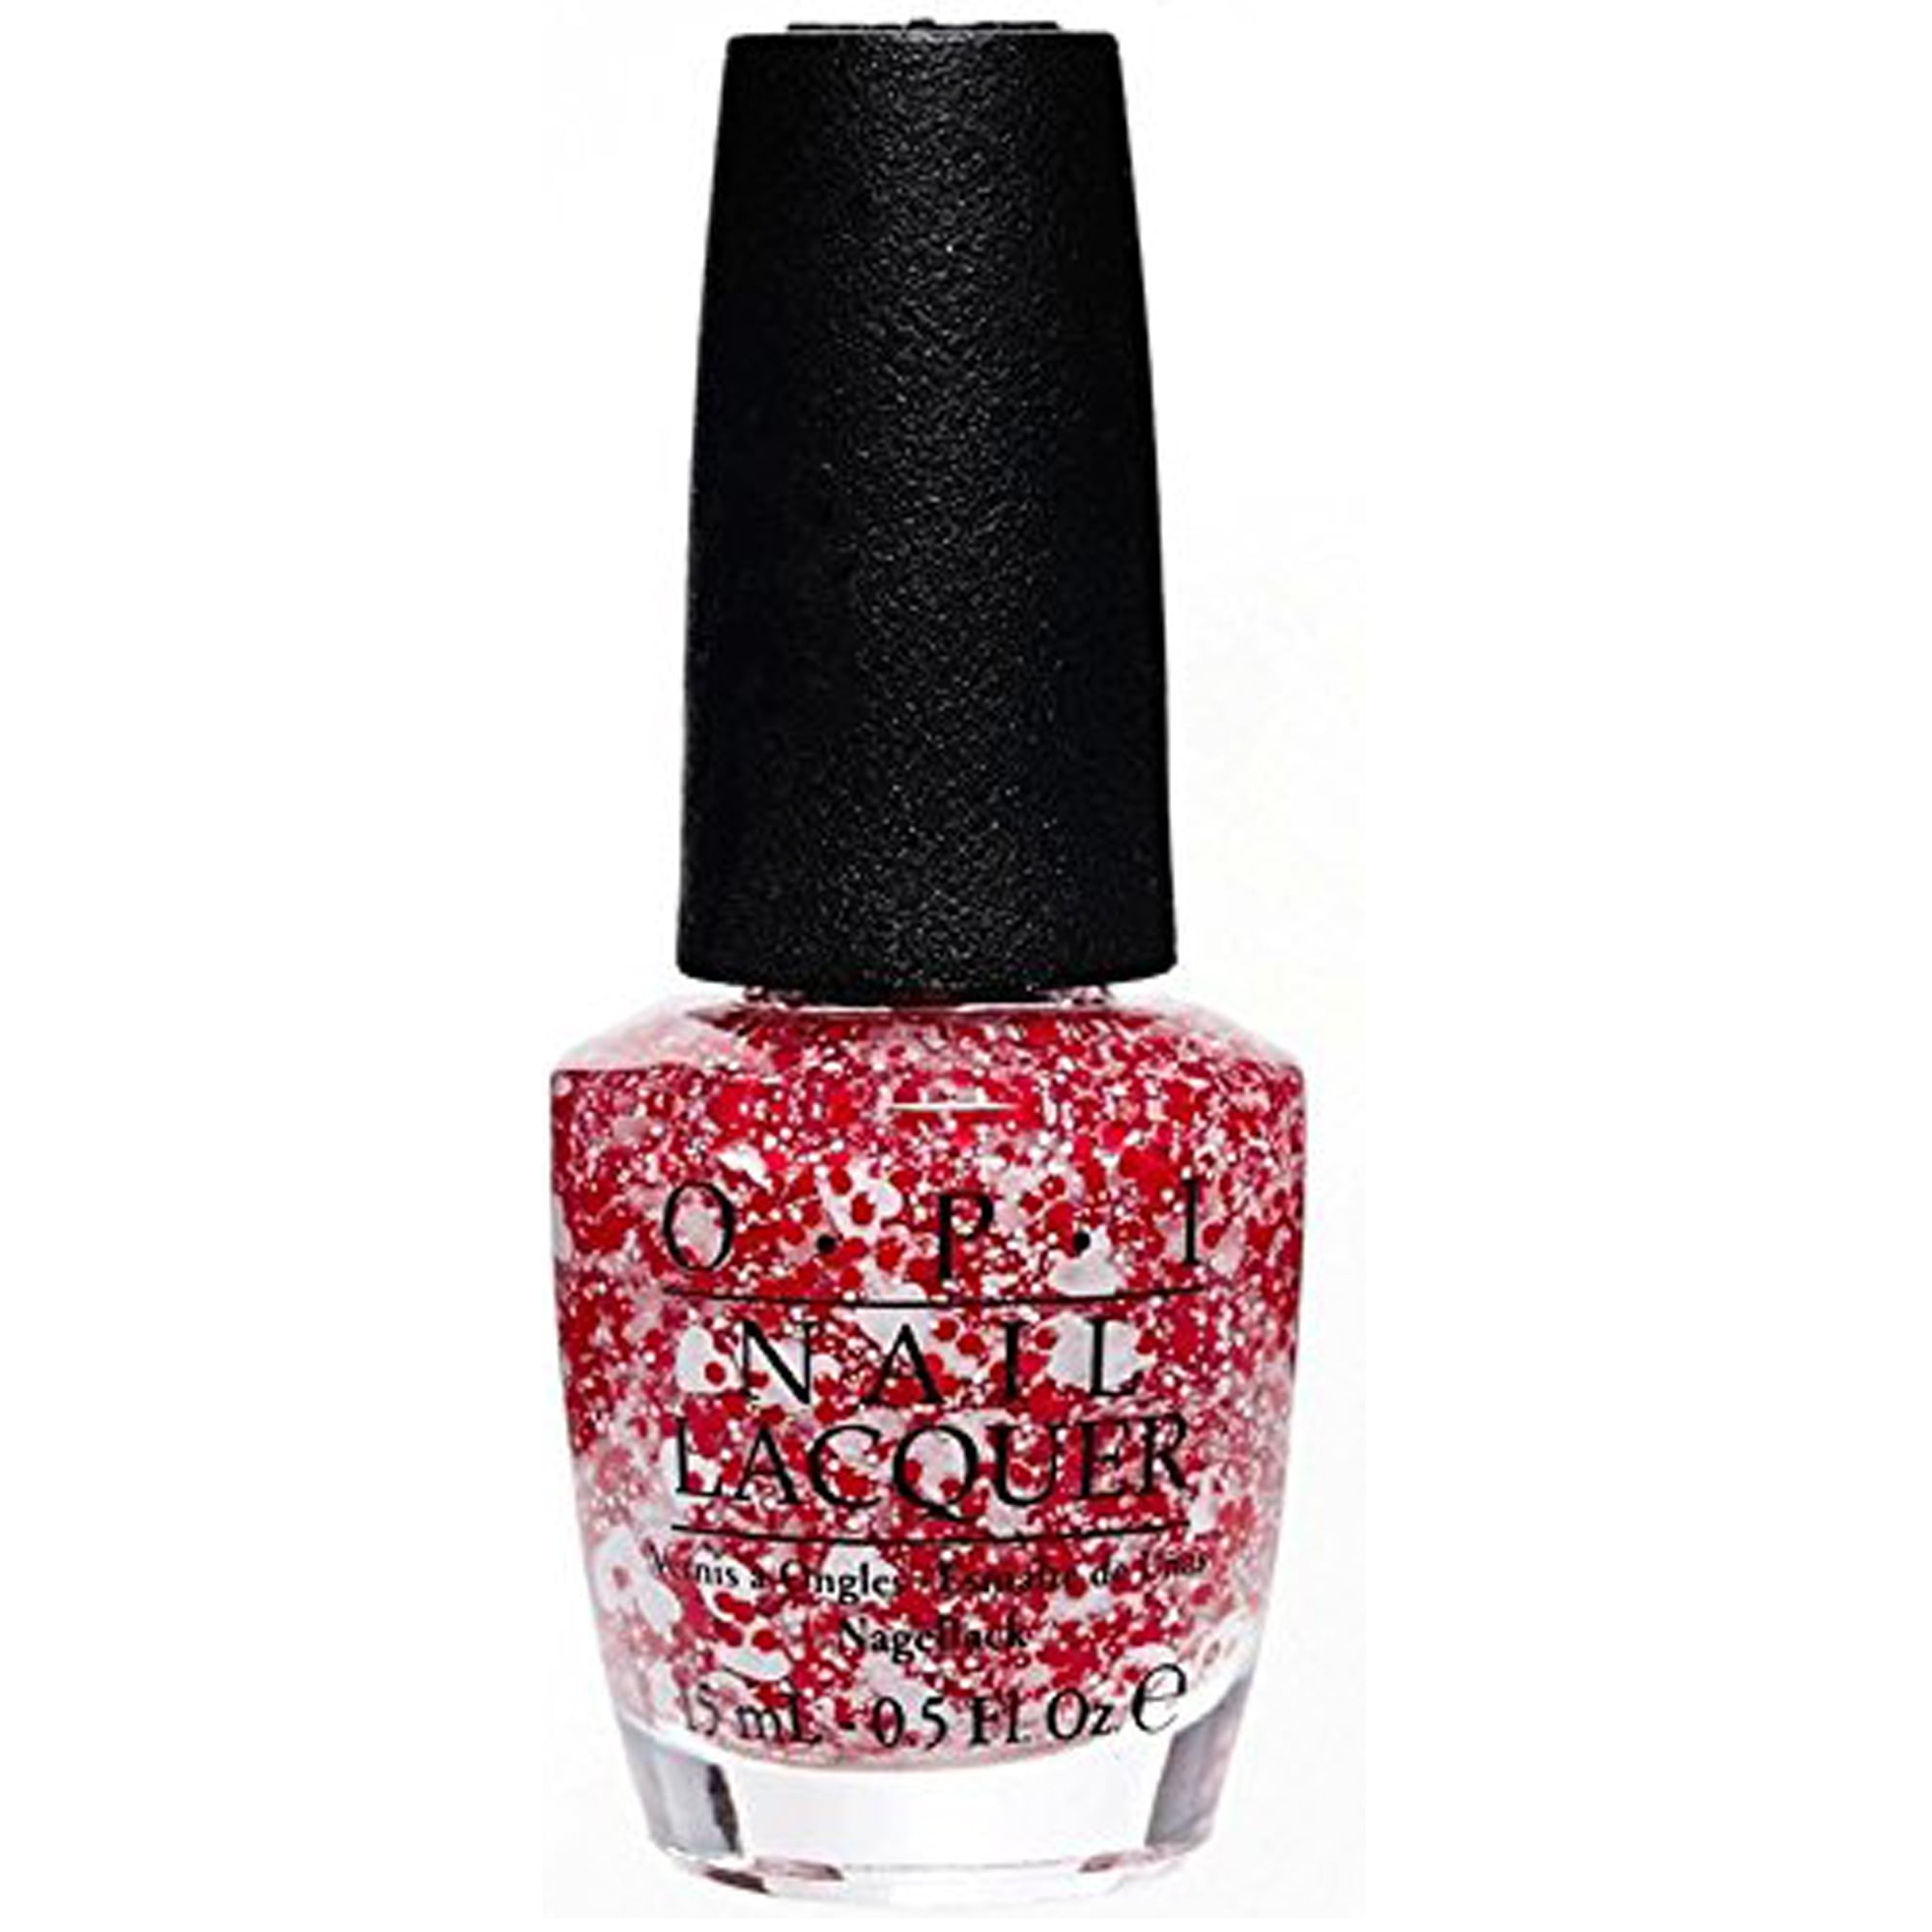 OPI Coca Cola Limited Edition Nail Polish Bearest Of Them All